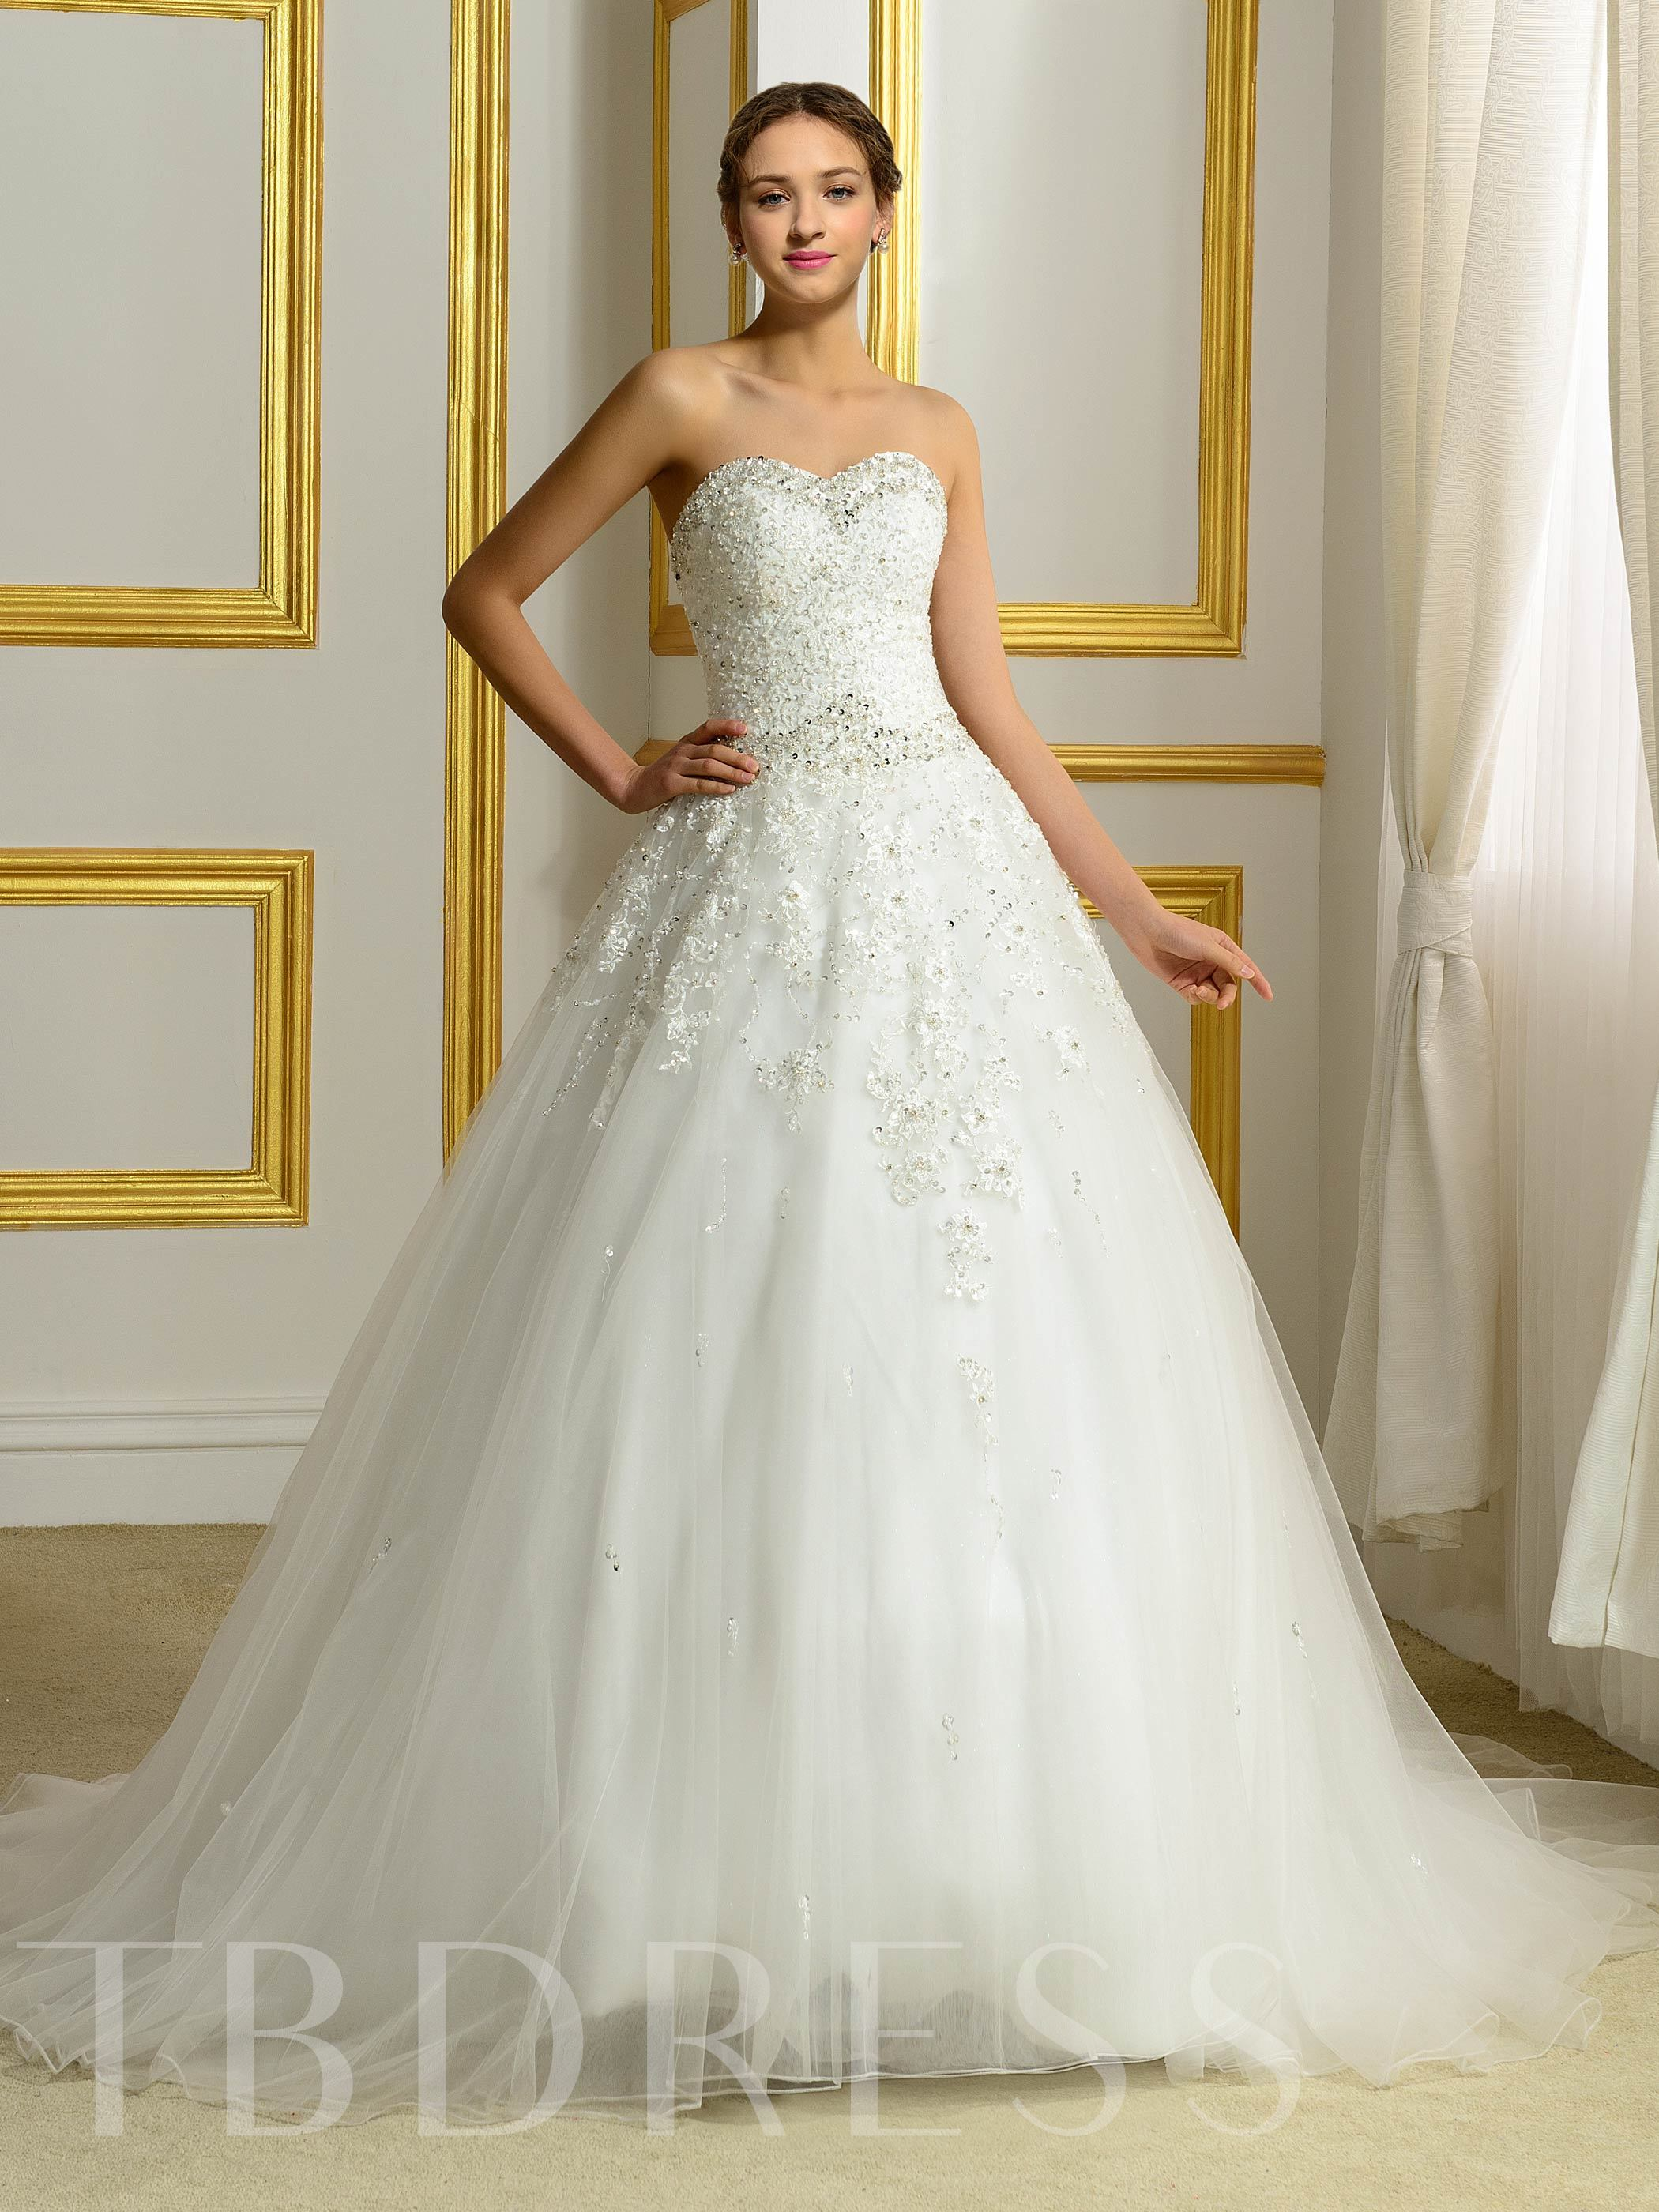 Image of Appliques Beading Sweetheart Ball Gown Plus Size Wedding Dress